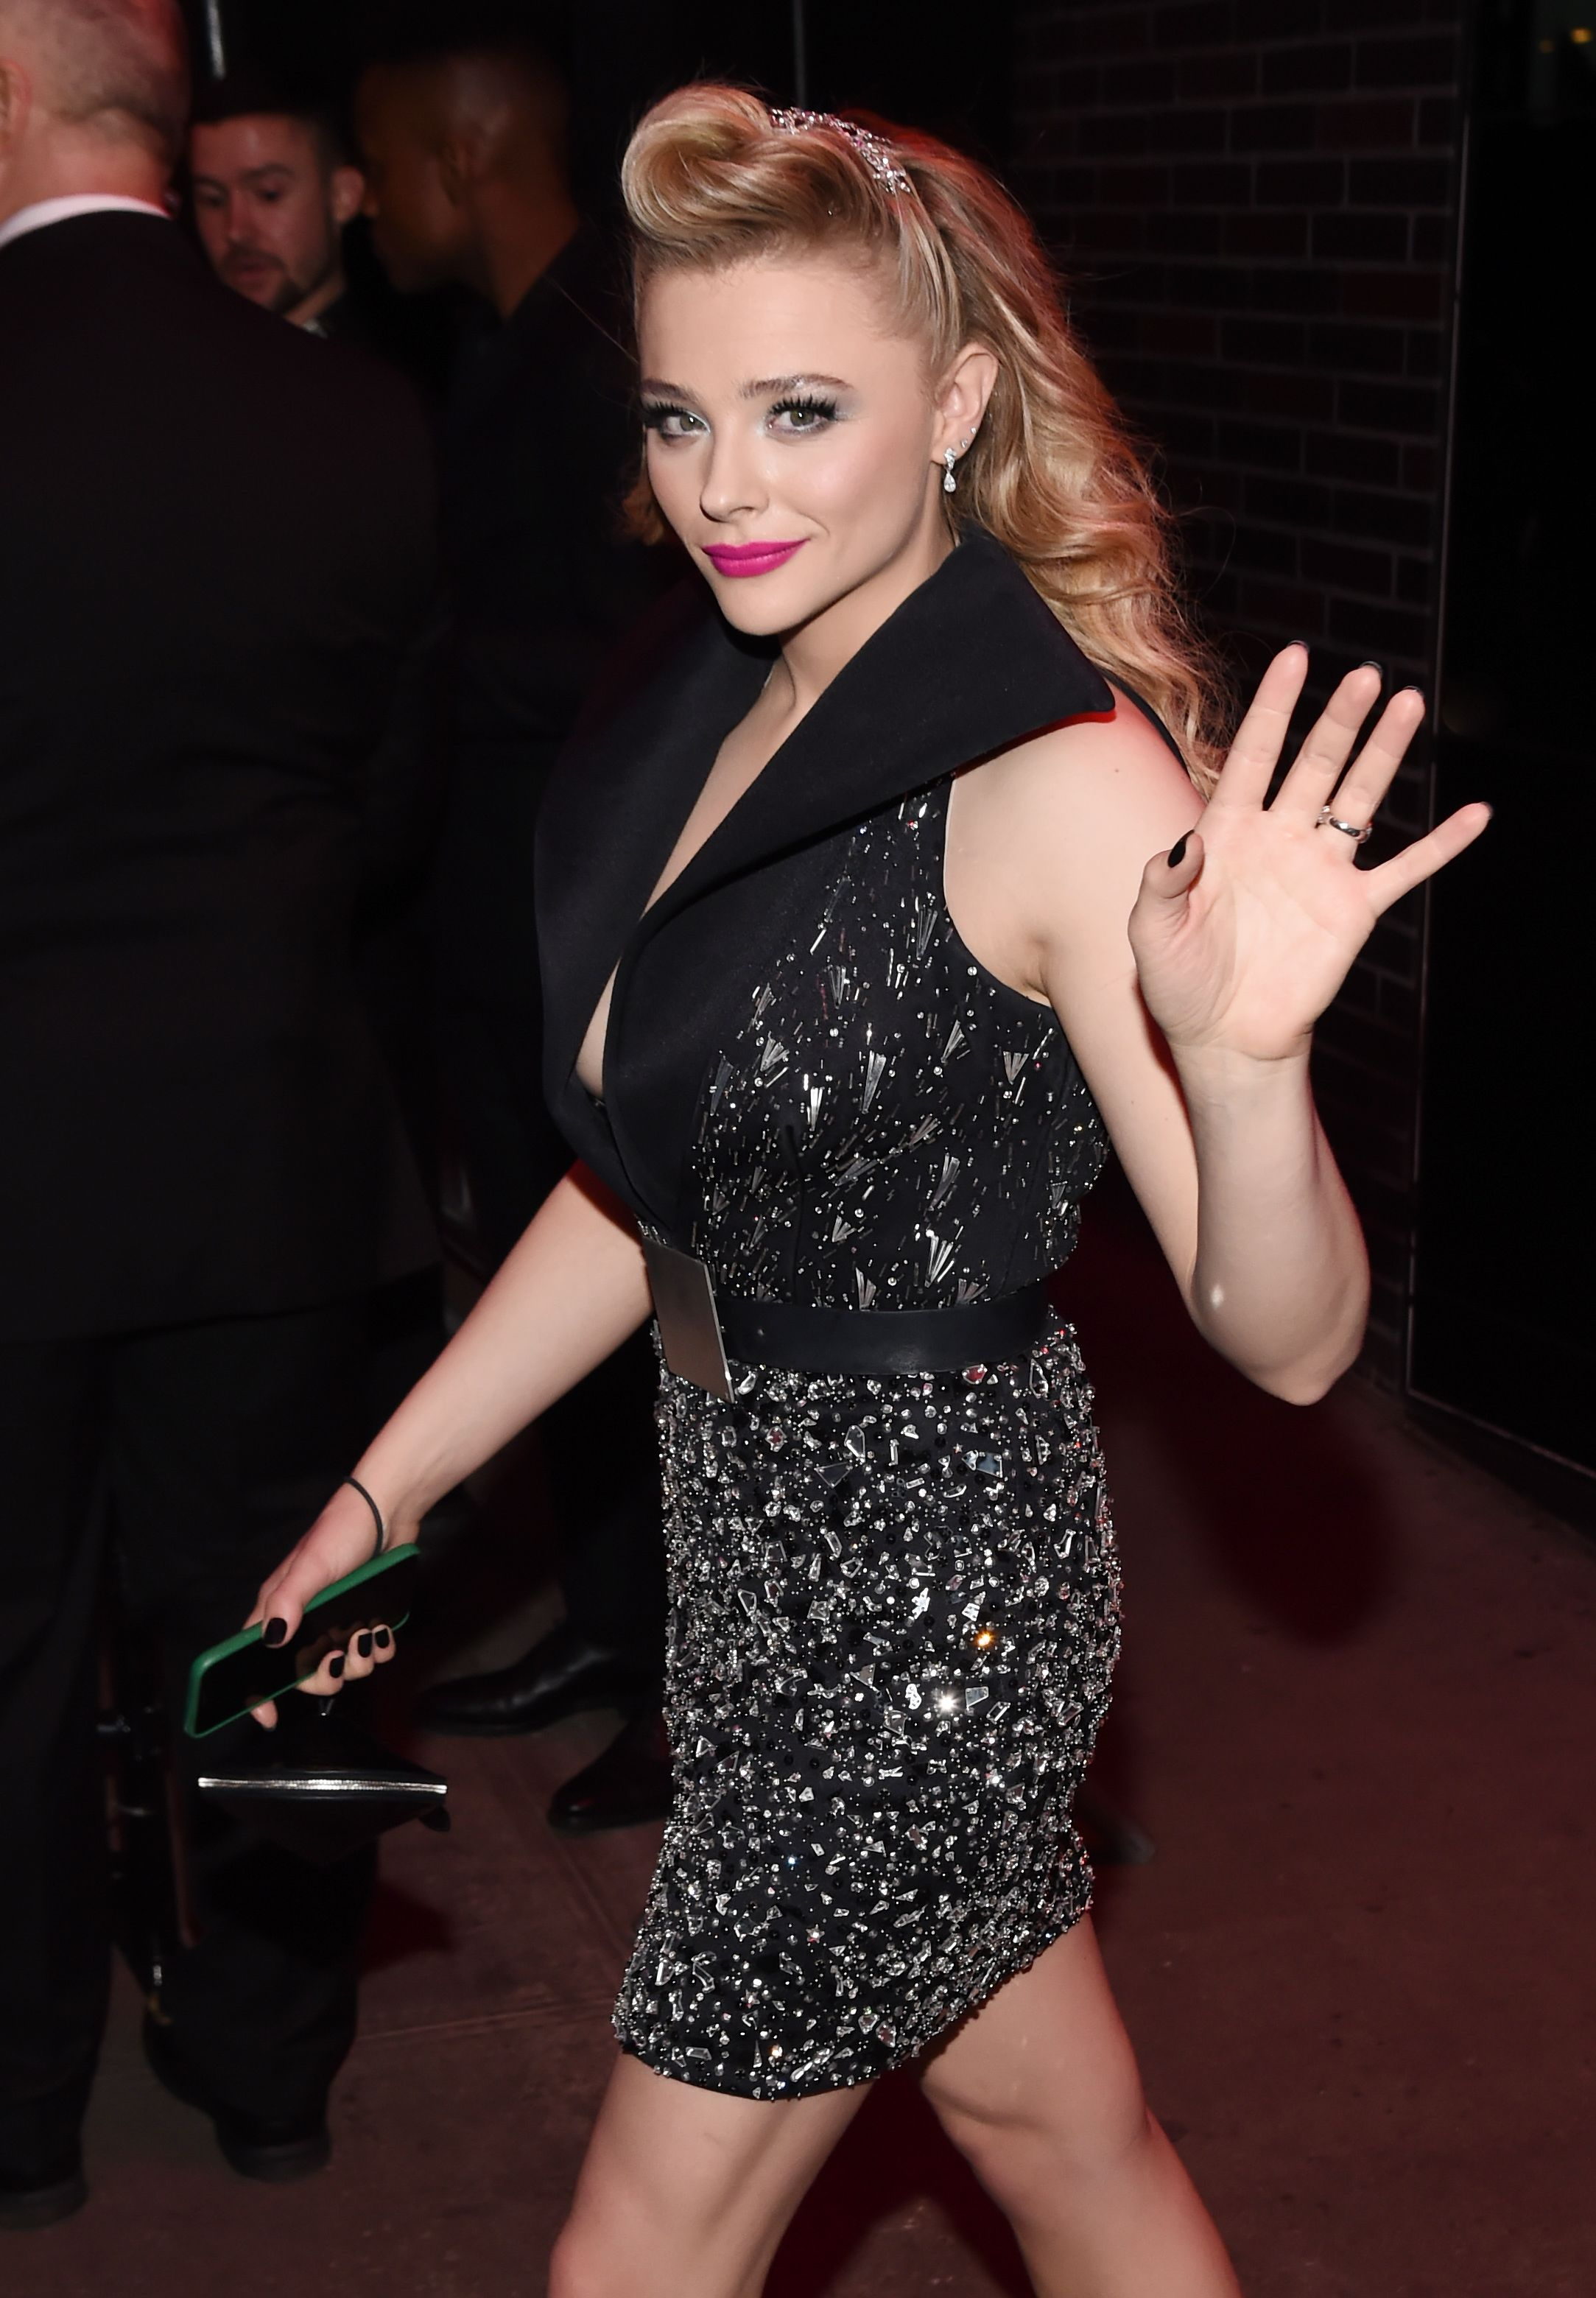 Chloe Grace Moretz Chloe Grace Moretz hit the streets in a black sleeveless blazer dress with a deep-v neckline.